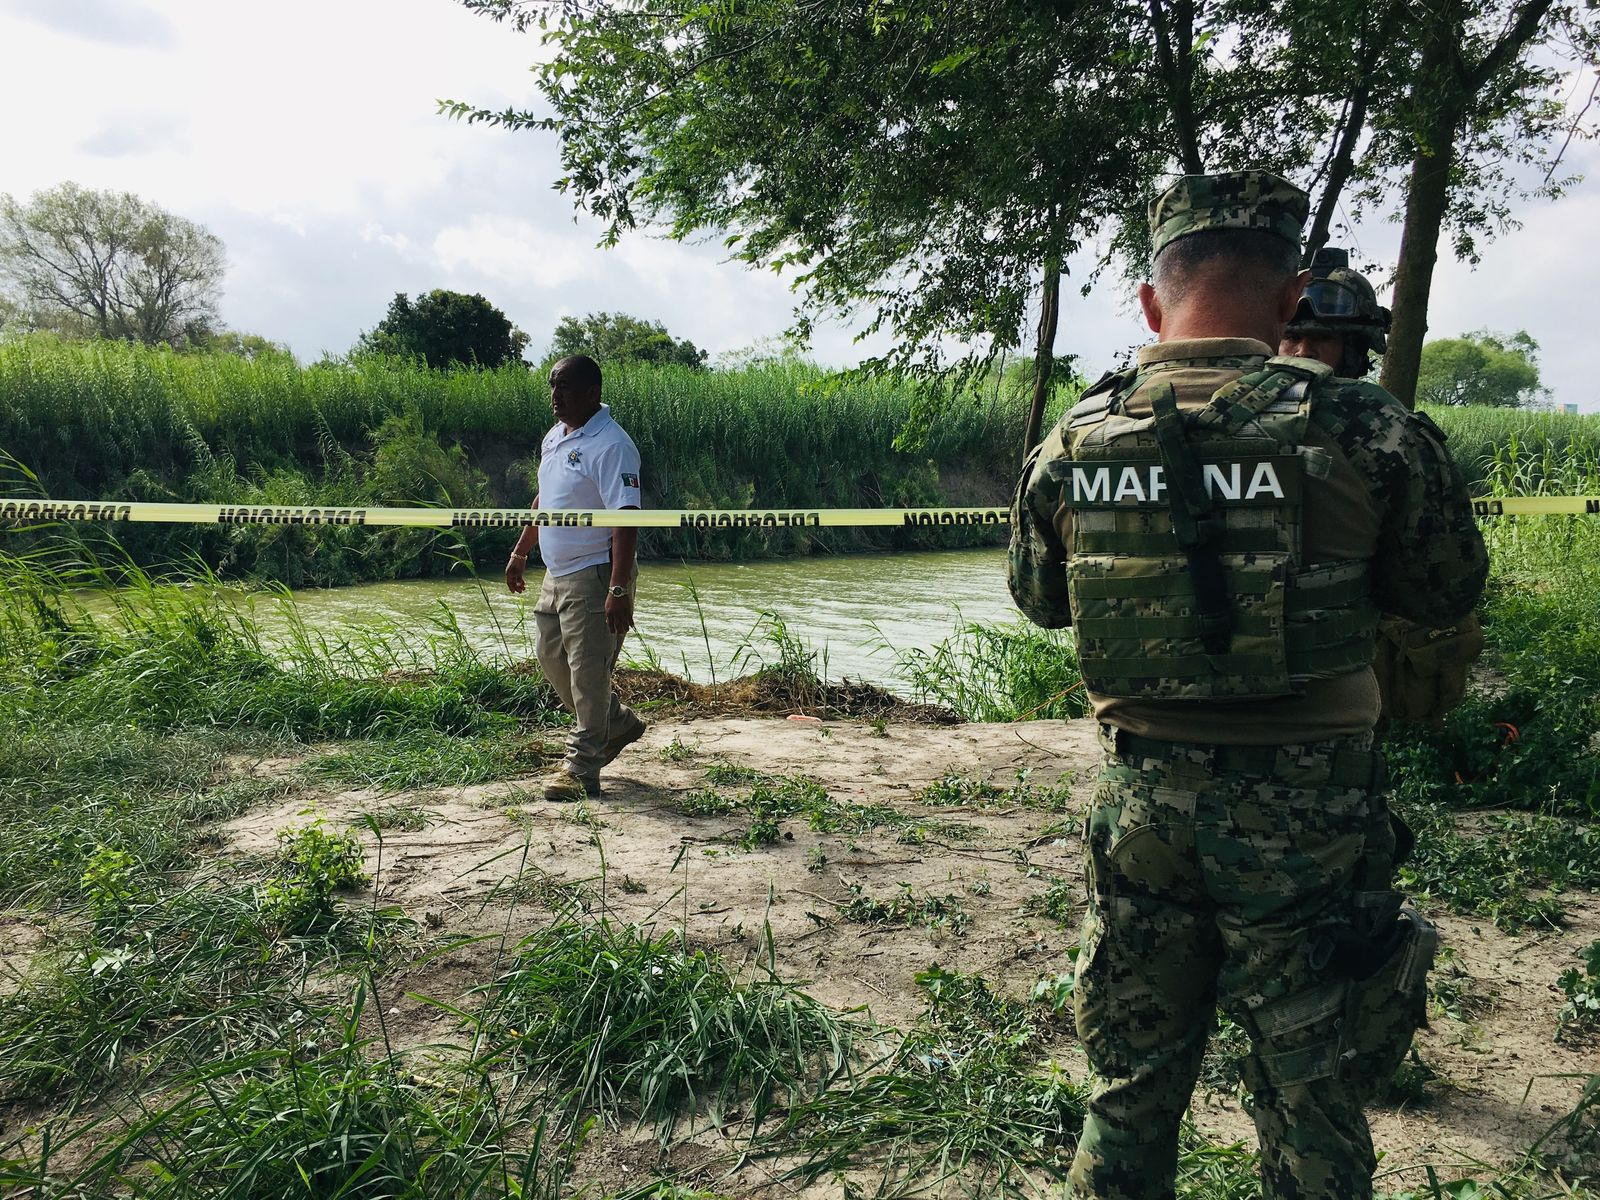 Mexican authorities walk along the Rio Grande bank where the bodies of Salvadoran migrant Oscar Alberto Martínez Ramírez and his nearly 2-year-old daughter Valeria were found, in Matamoros, Mexico, Monday, June 24, 2019, after they drowned trying to cross the river to Brownsville, Texas. Martinez' wife, Tania told Mexican authorities she watched her husband and child disappear in the strong current. (AP Photo/Julia Le Duc)